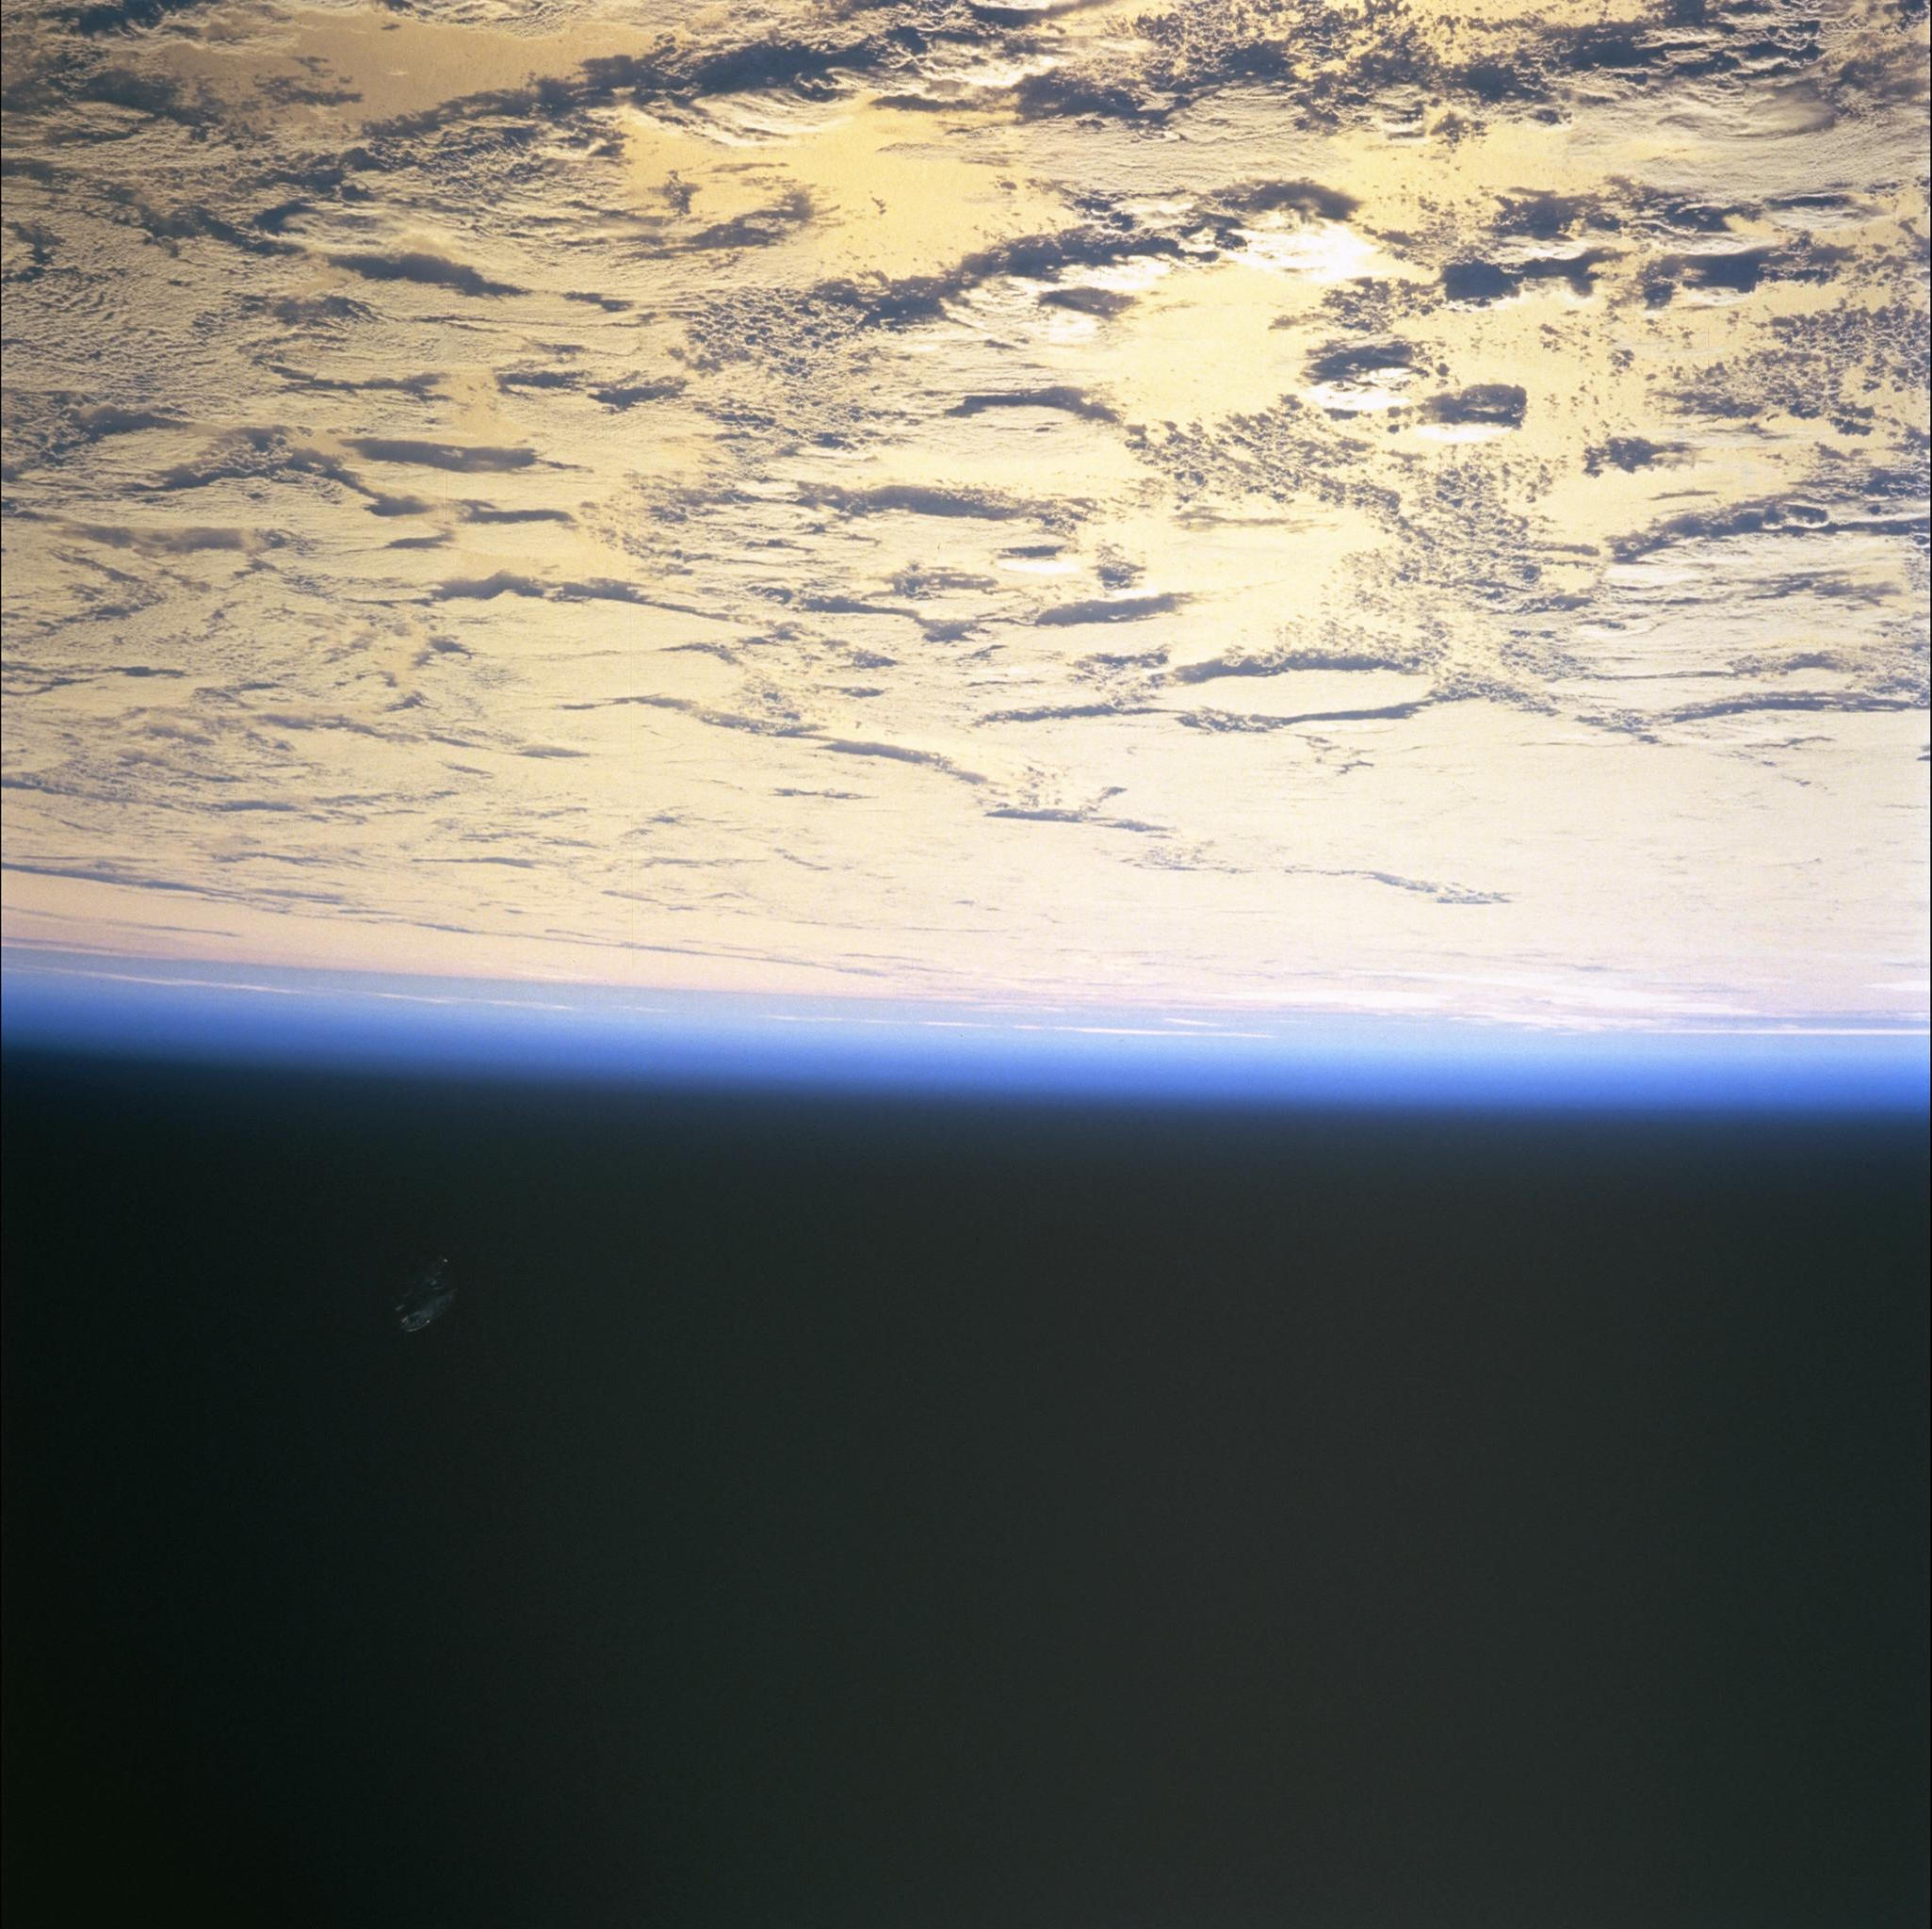 black knight satellite NASA STS088-724-65 pictures